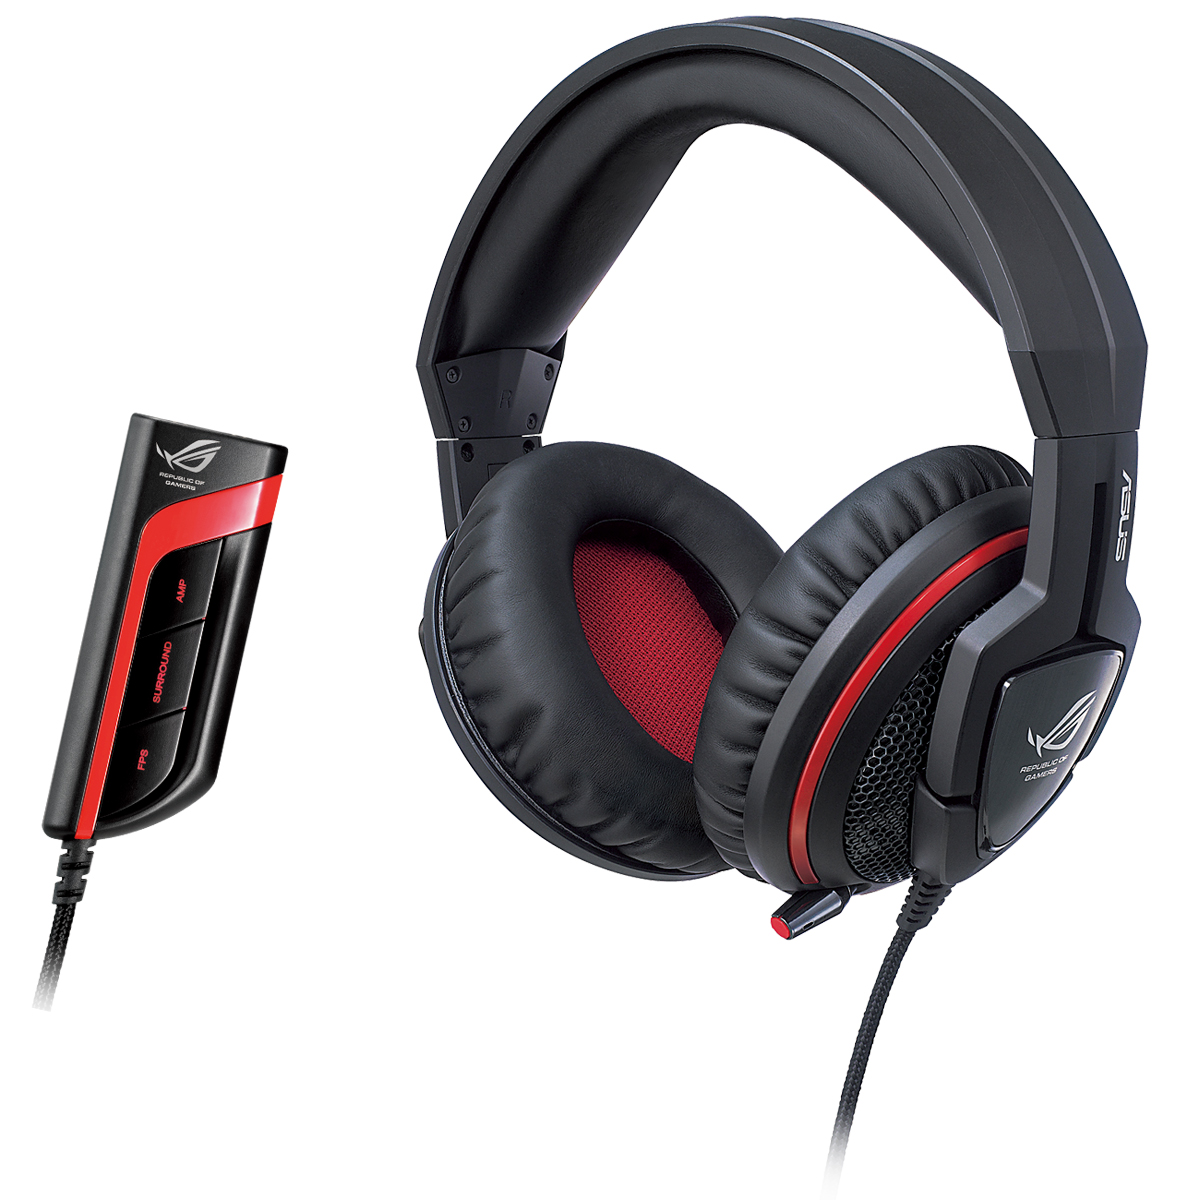 Micro-casque ASUS ROG Republic of Gamers Orion PRO Casque-micro à réduction active de bruit pour gamer